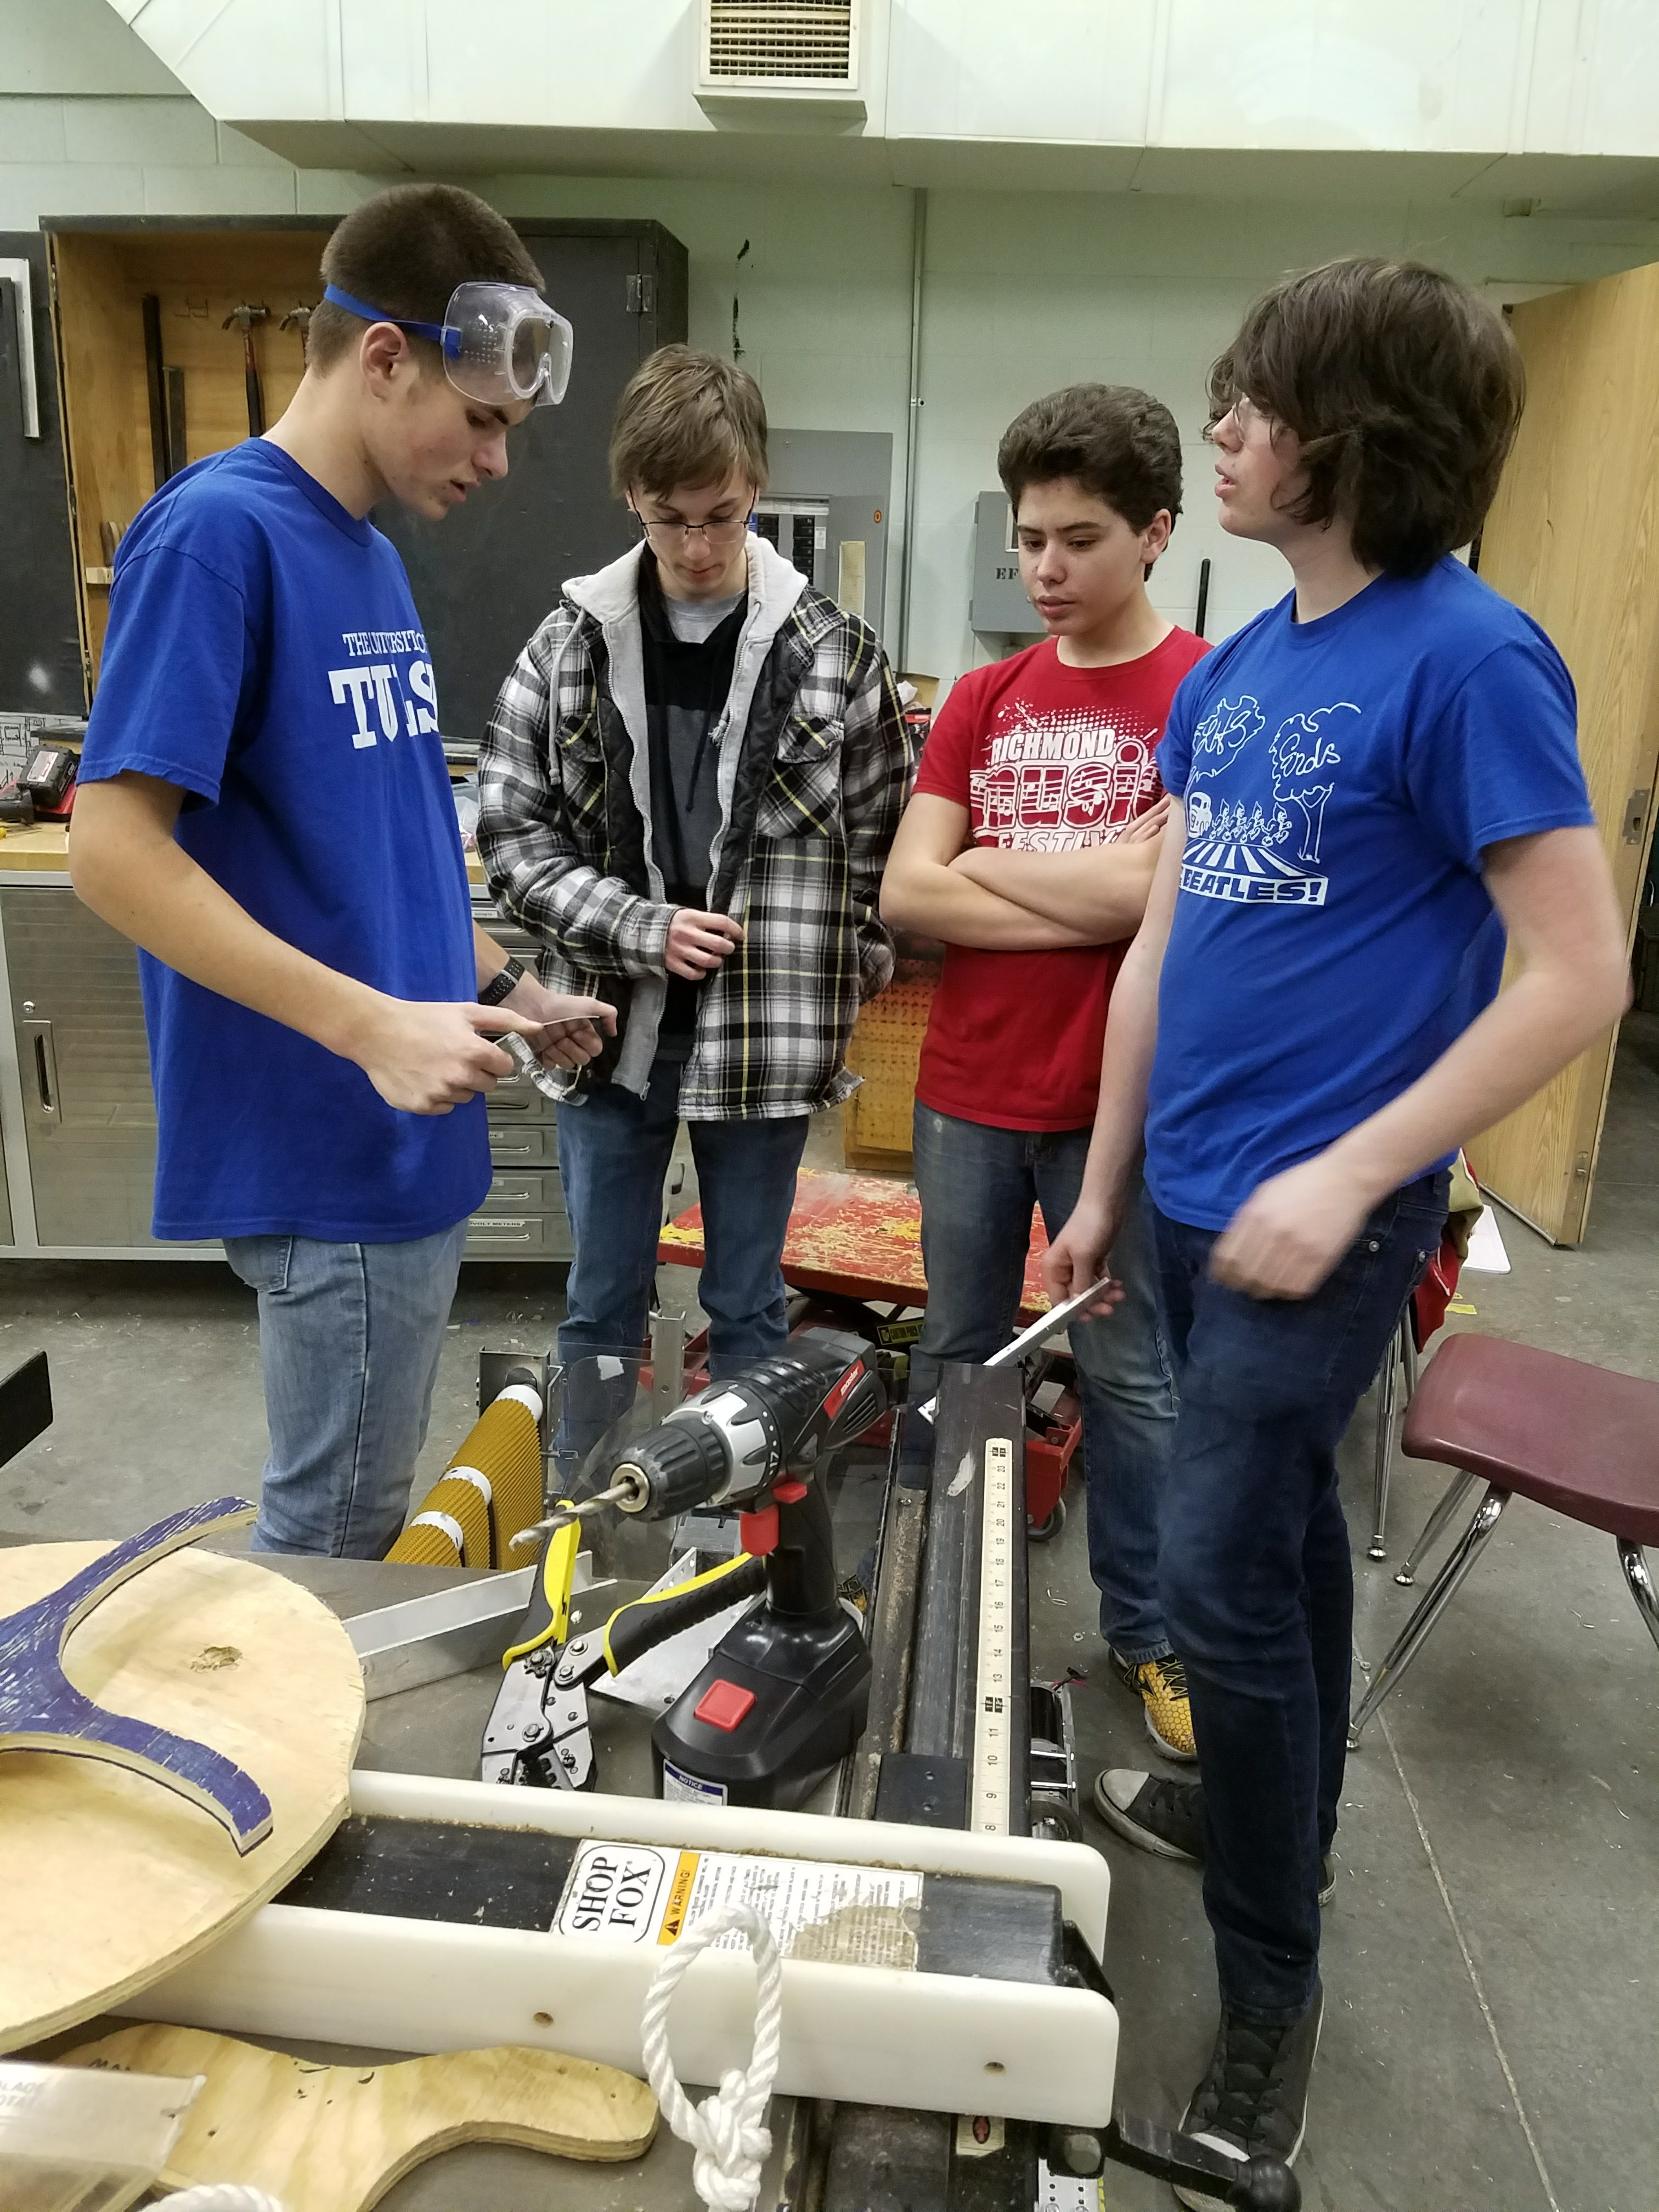 From left to right, Evan Dahlor, Zach Durbin, Ian Mace, and Hunter Mace standing on our robot.